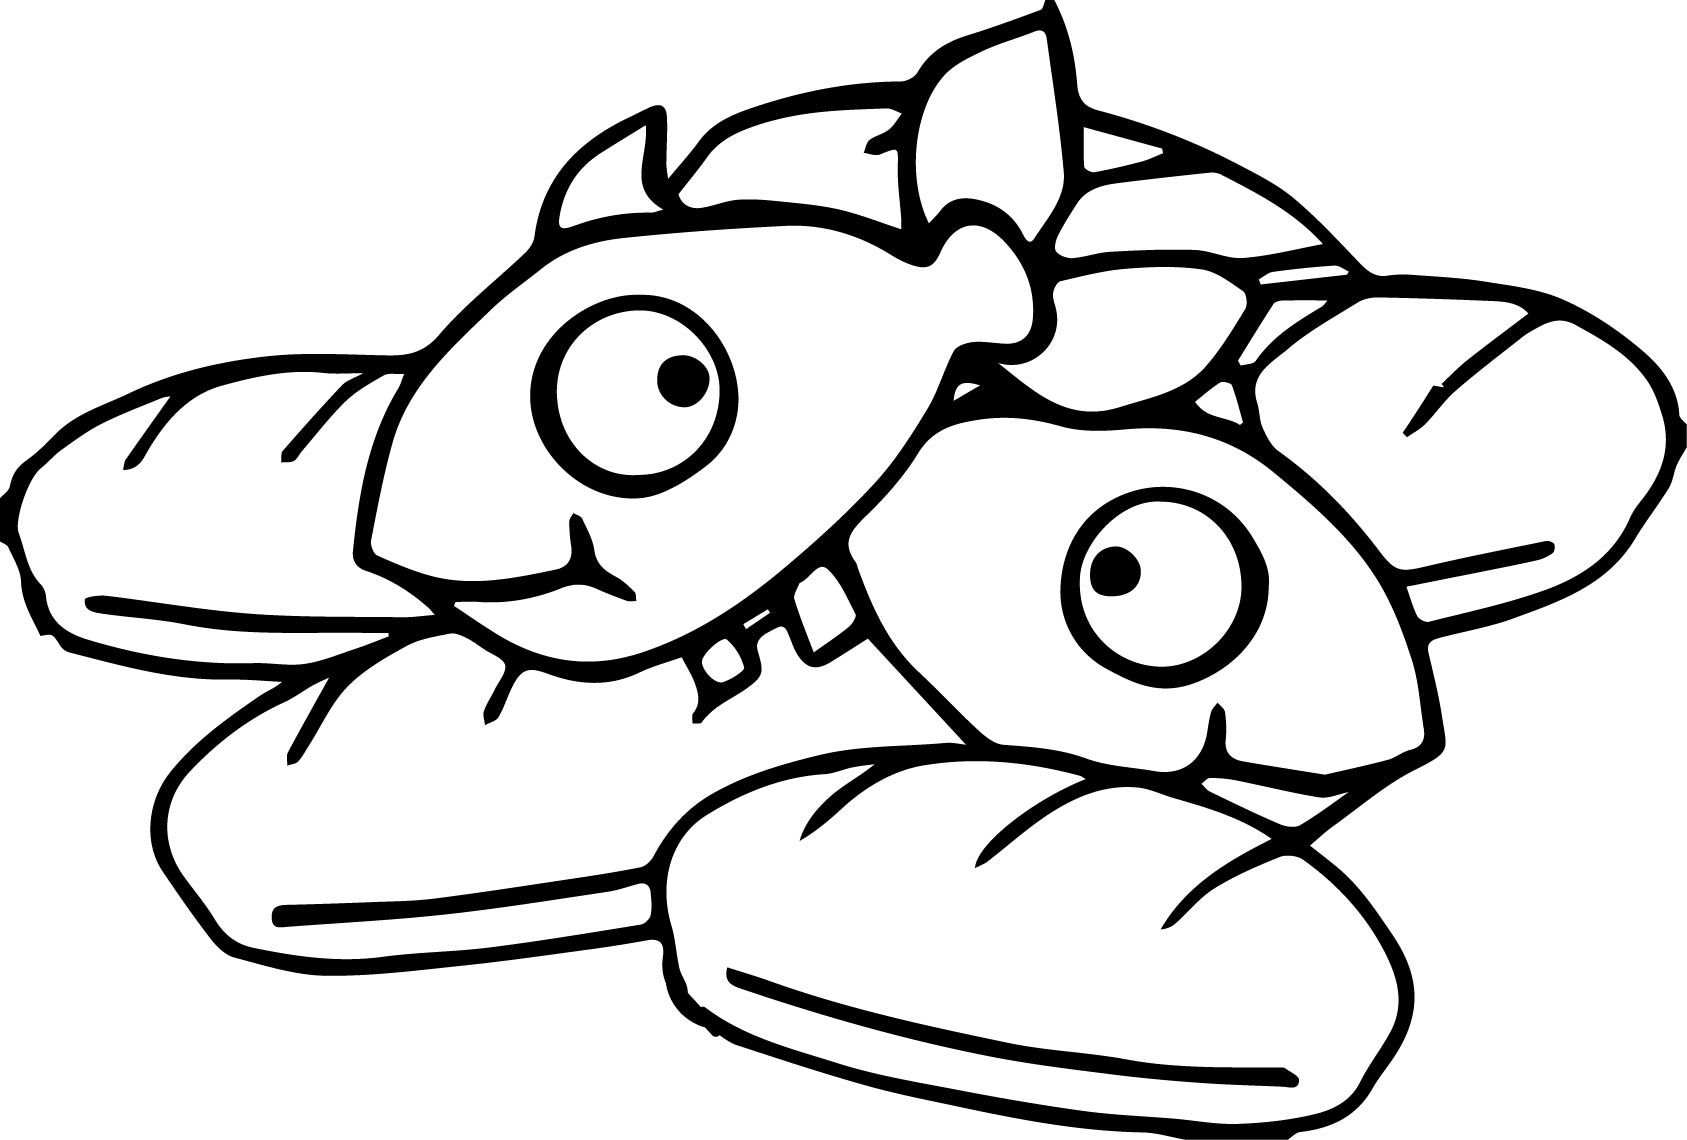 cool 13 Loaves And 13 Fish Flash Coloring Page | wecoloringpage ...